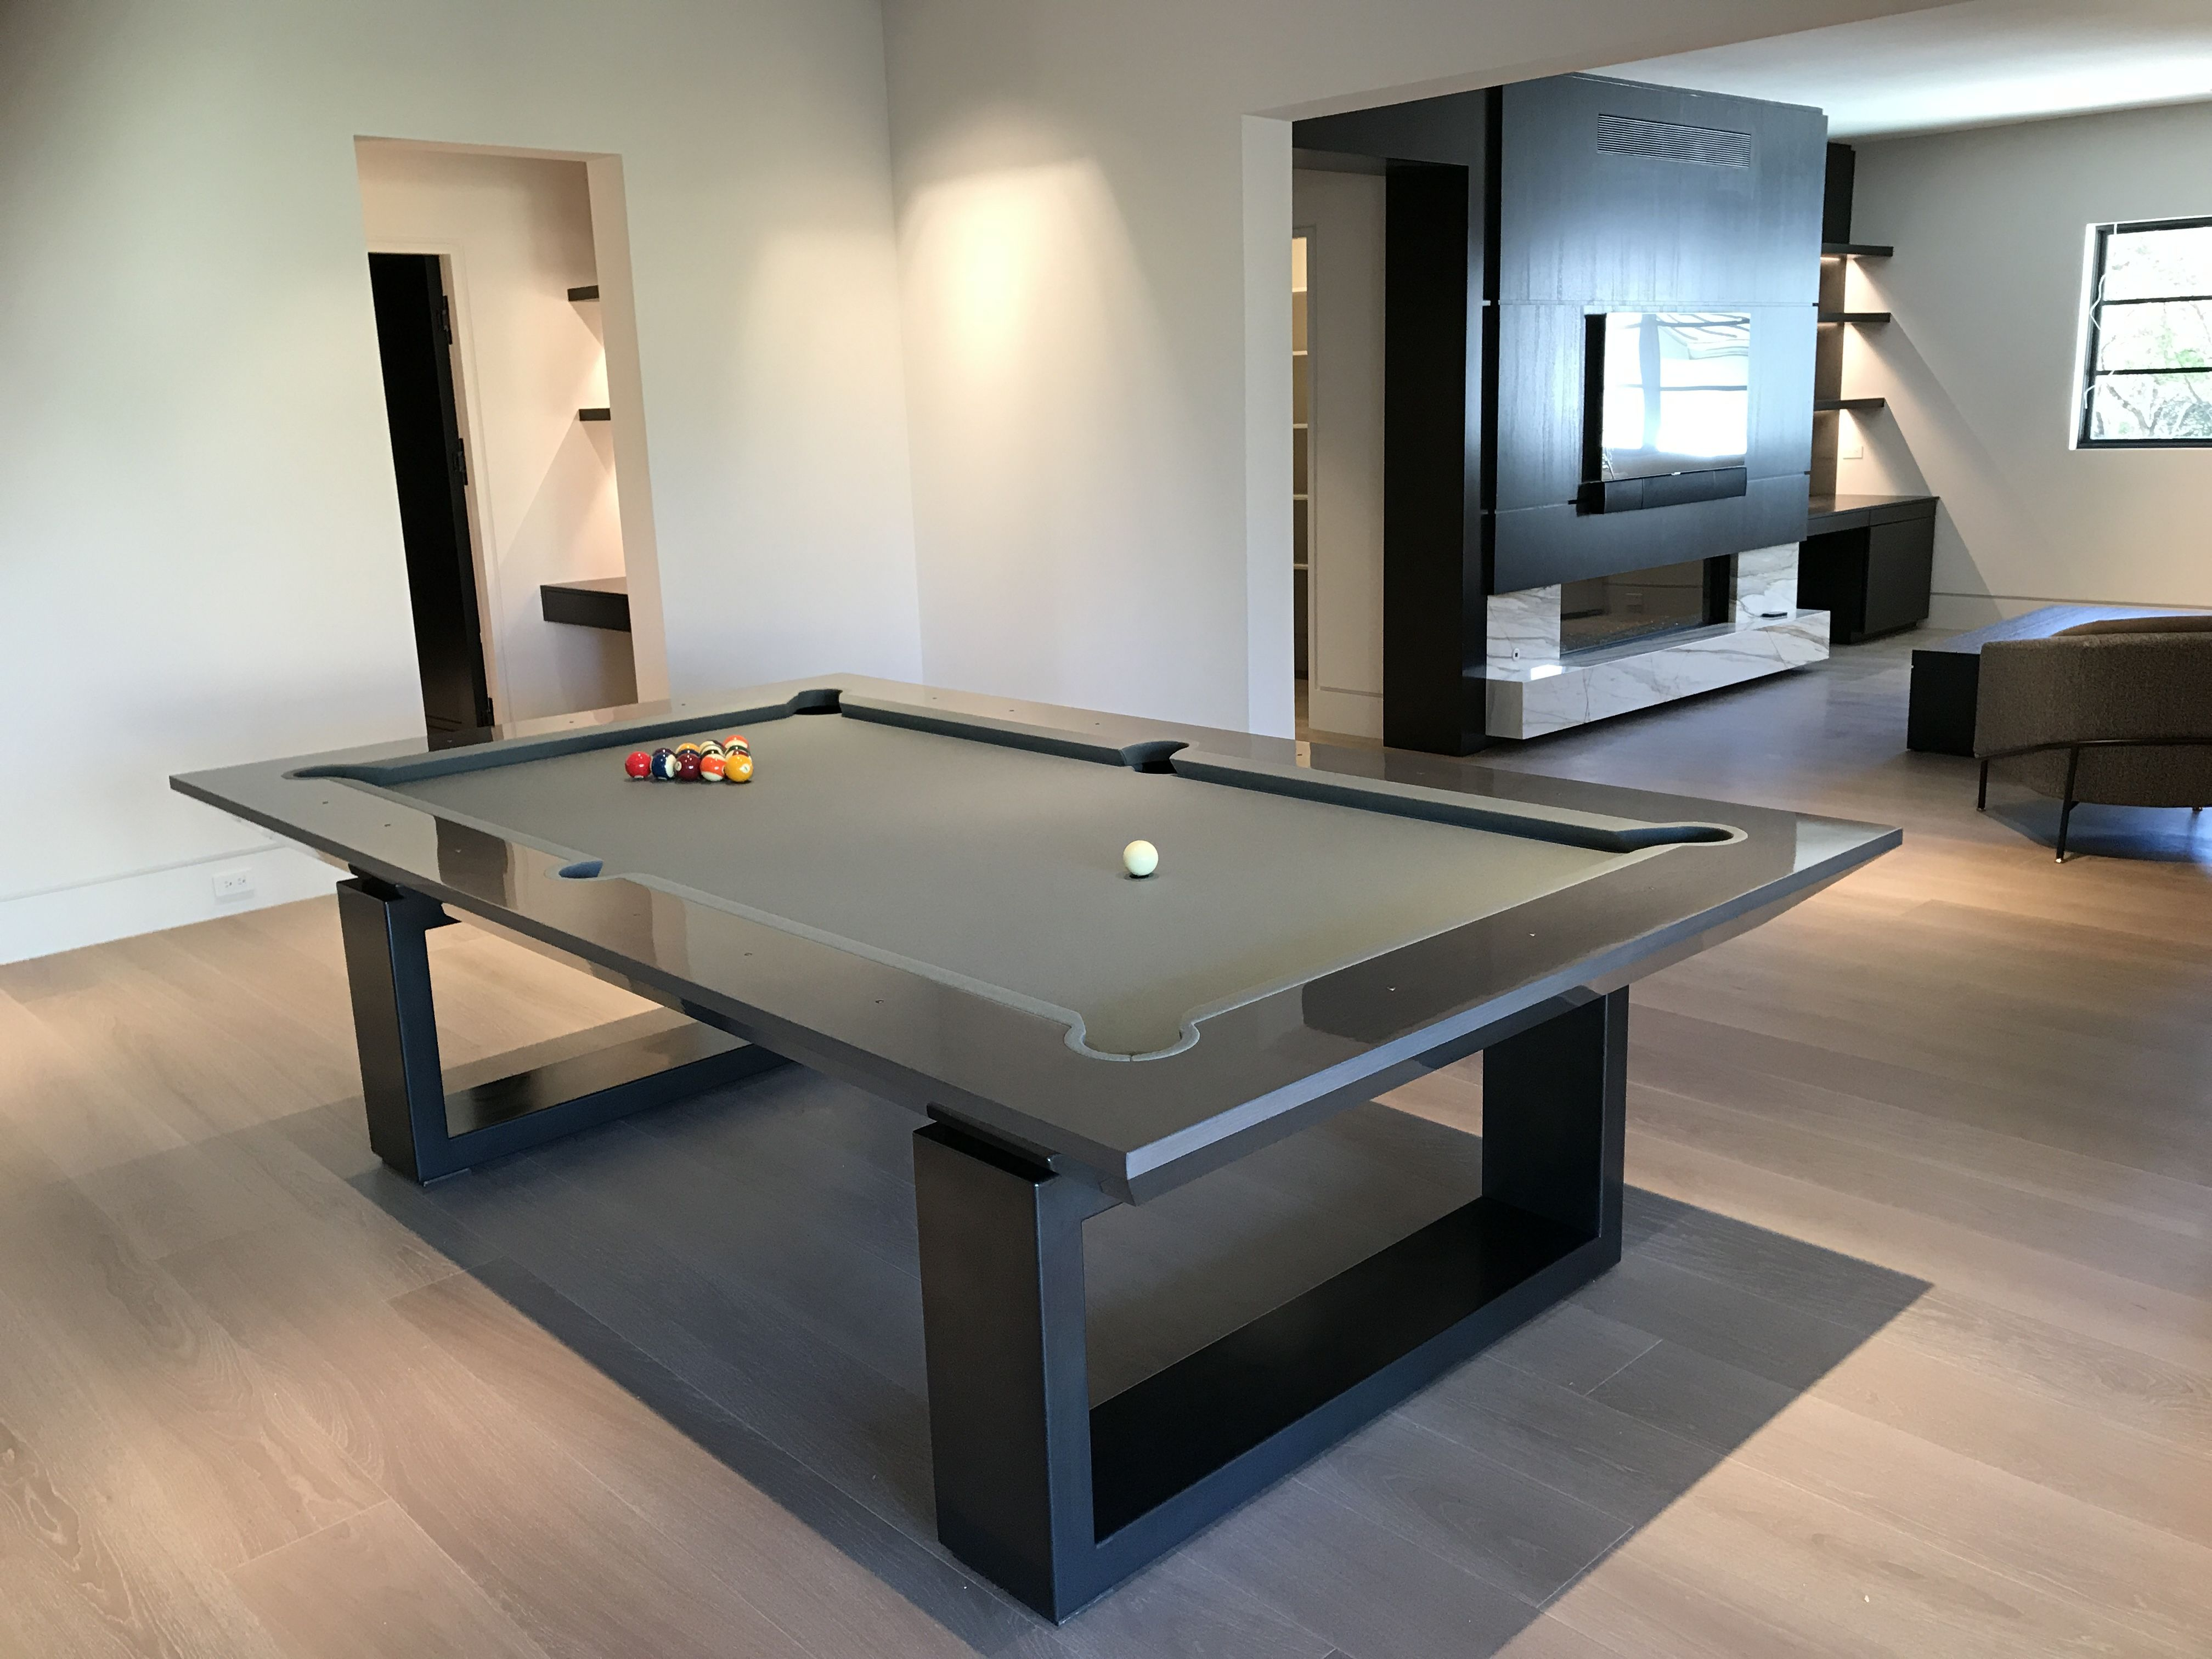 Black Pool Table | Modern pool table, Pool table, Pool table games